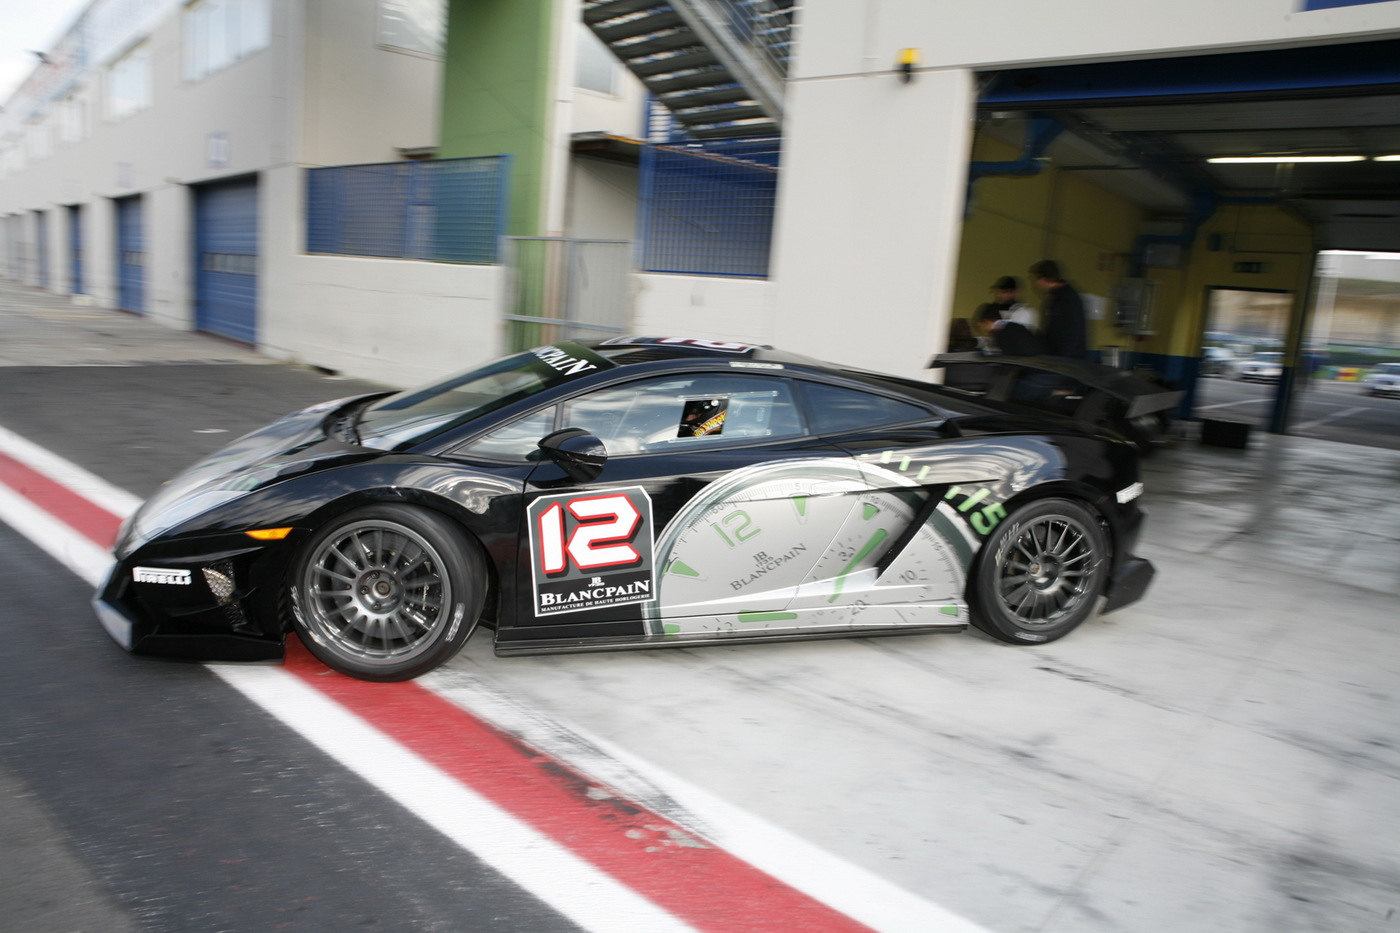 2019 Lamborghini Gallardo LP560 4 Super Trofeo photo - 5